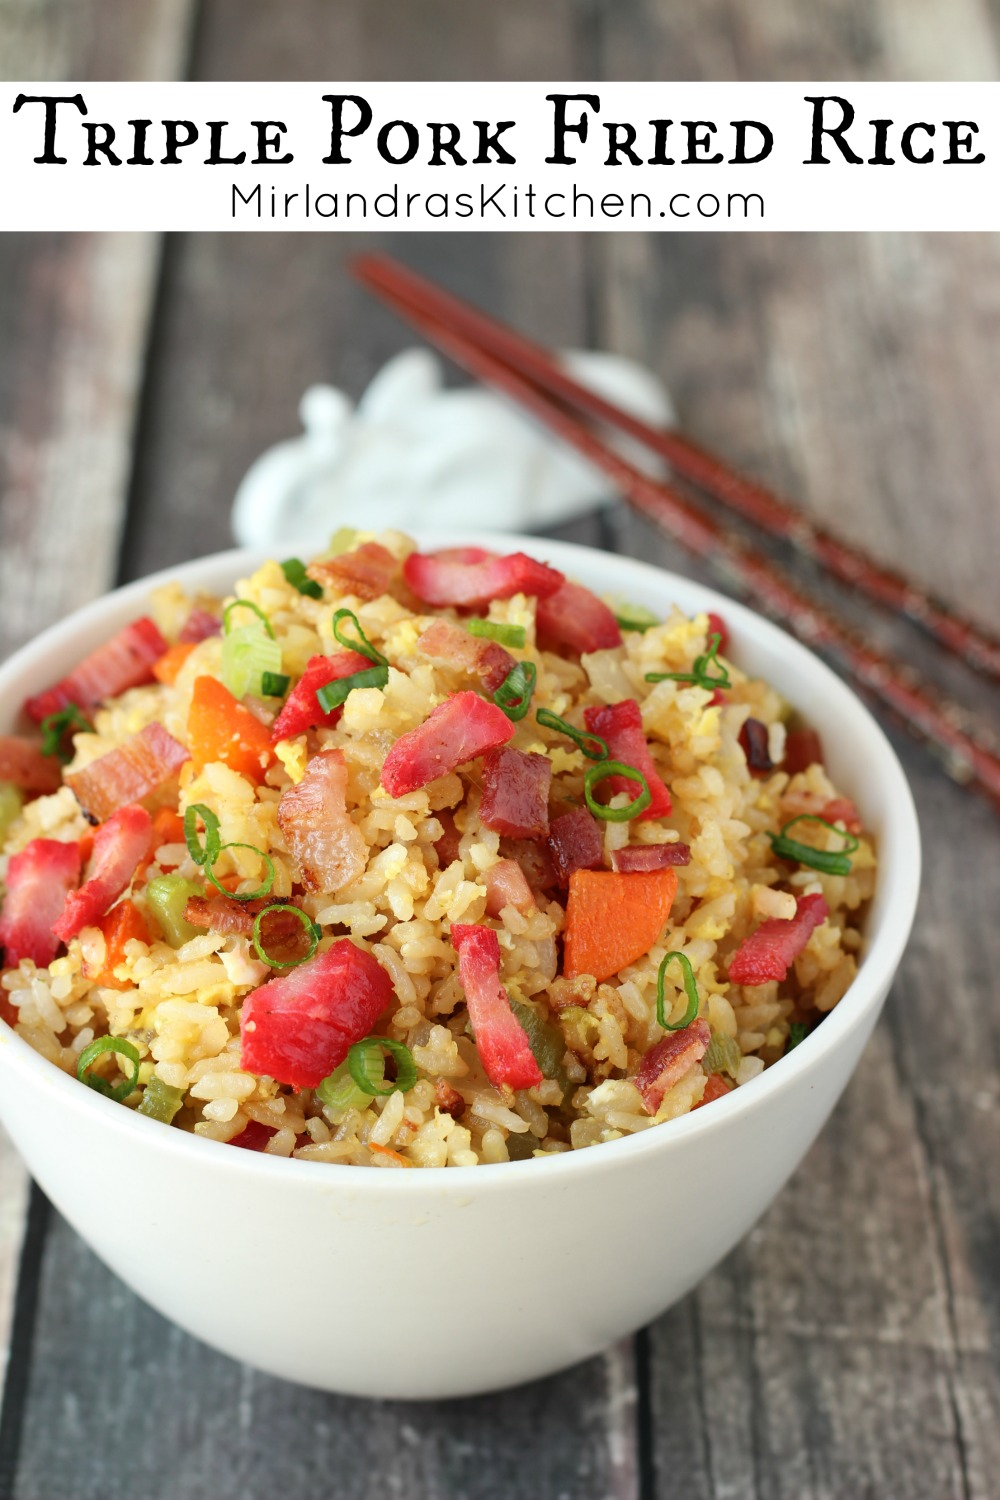 This Triple Pork Fried Rice is bursting with pork and flavor. It is quite simply one of the best fried rice recipes in existence. We always look forward to this meal and it is one of our go to options for a family dinner on a busy night.